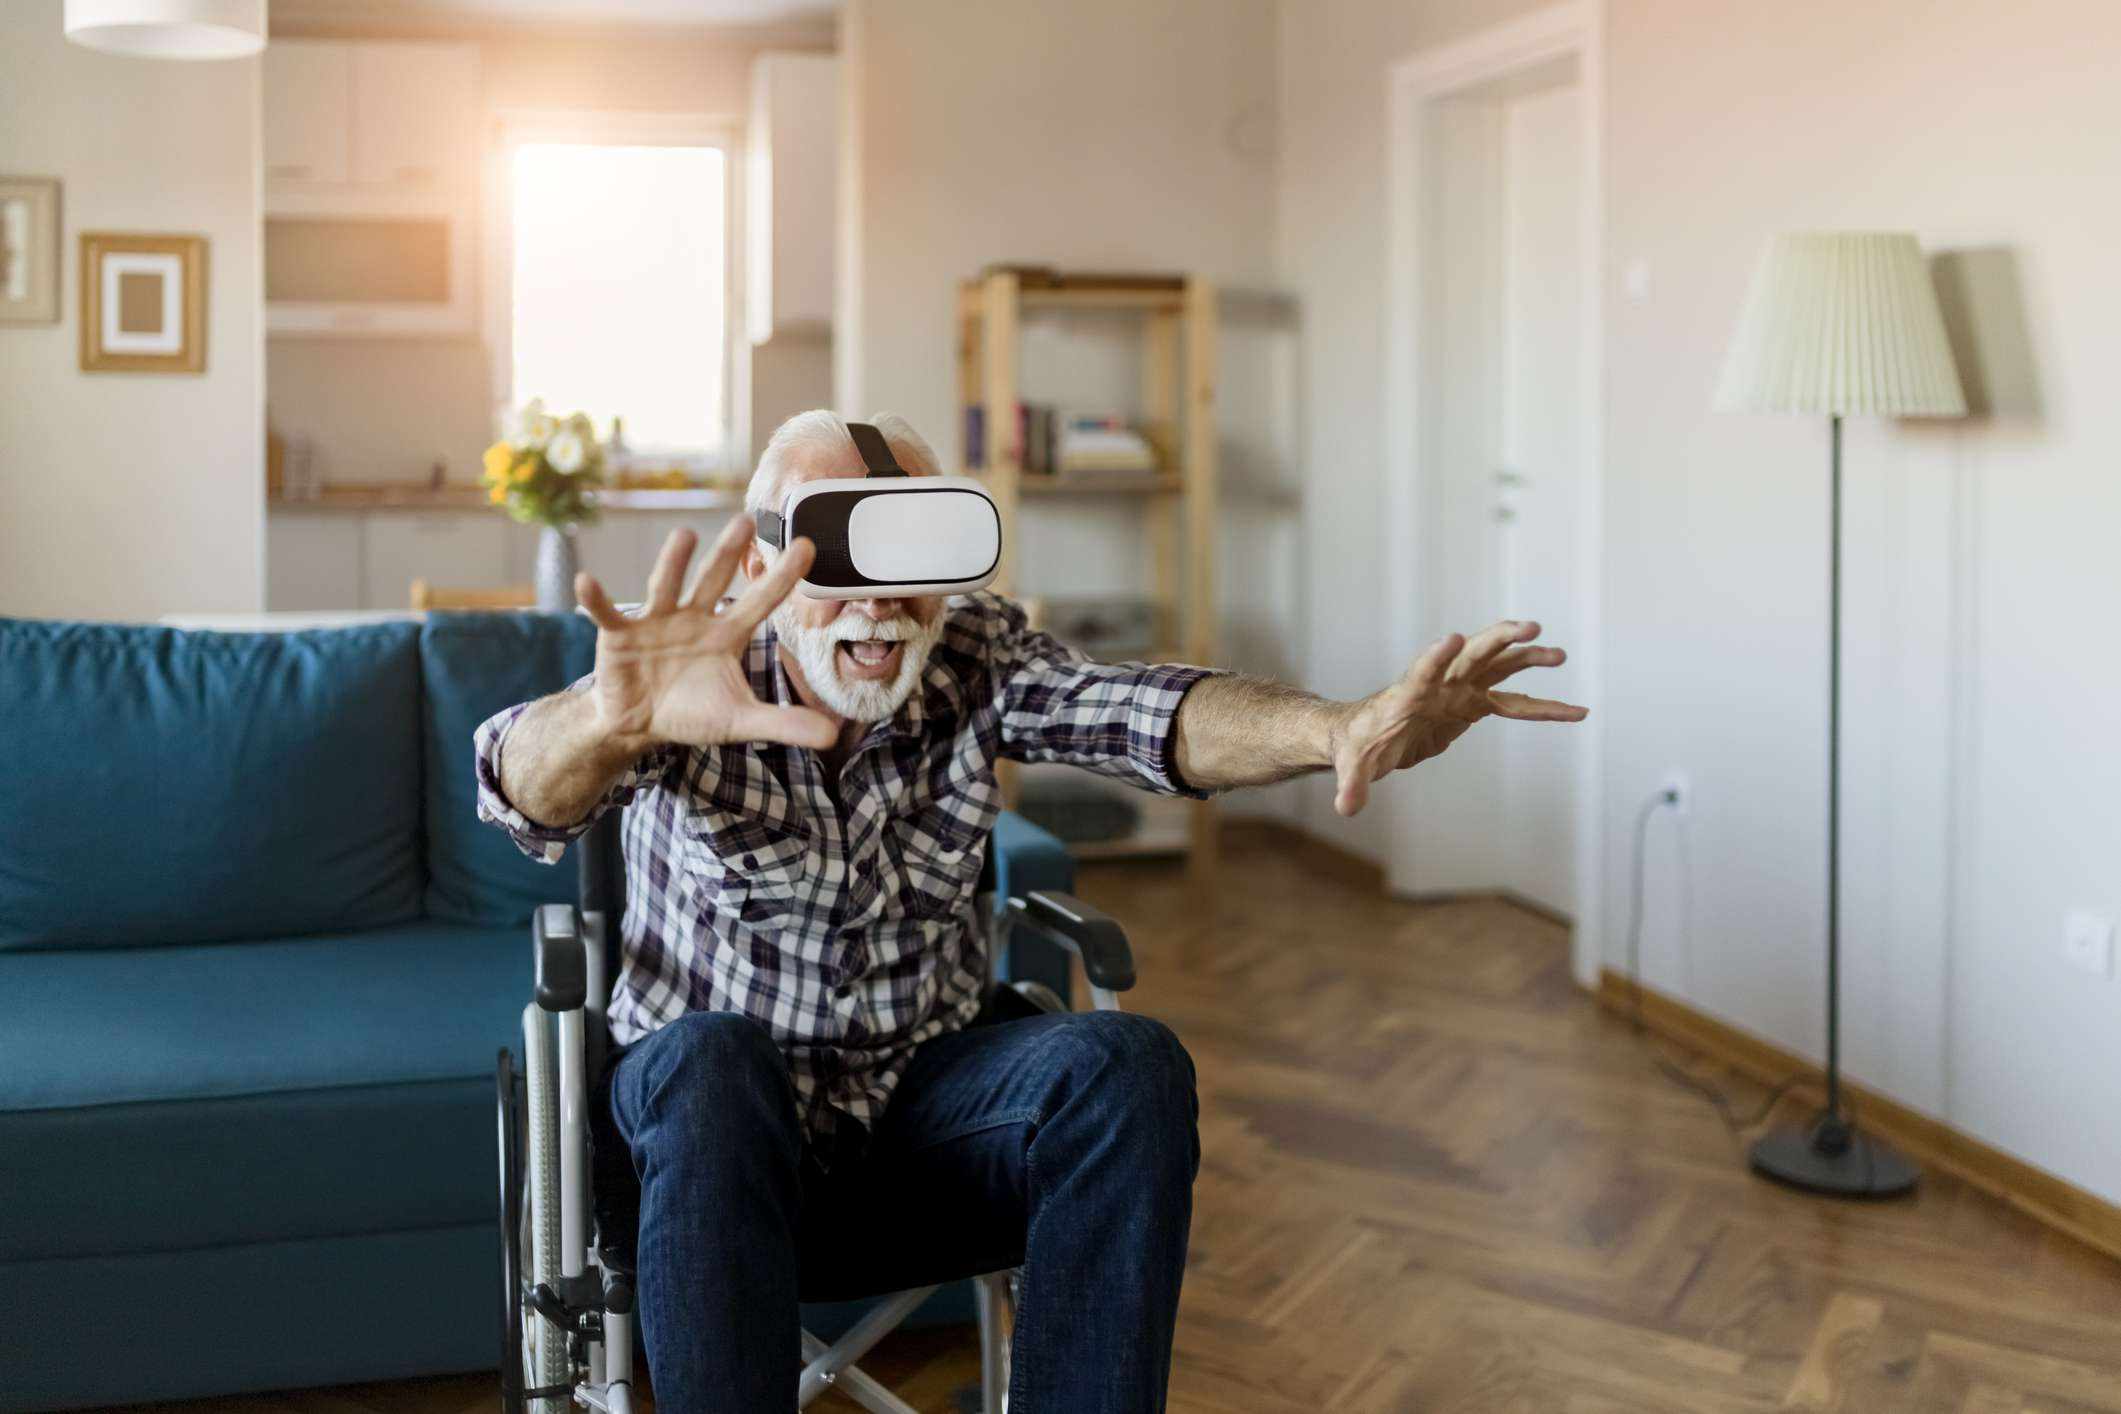 An elderly person in a wheelchair, using a VR headset alone.